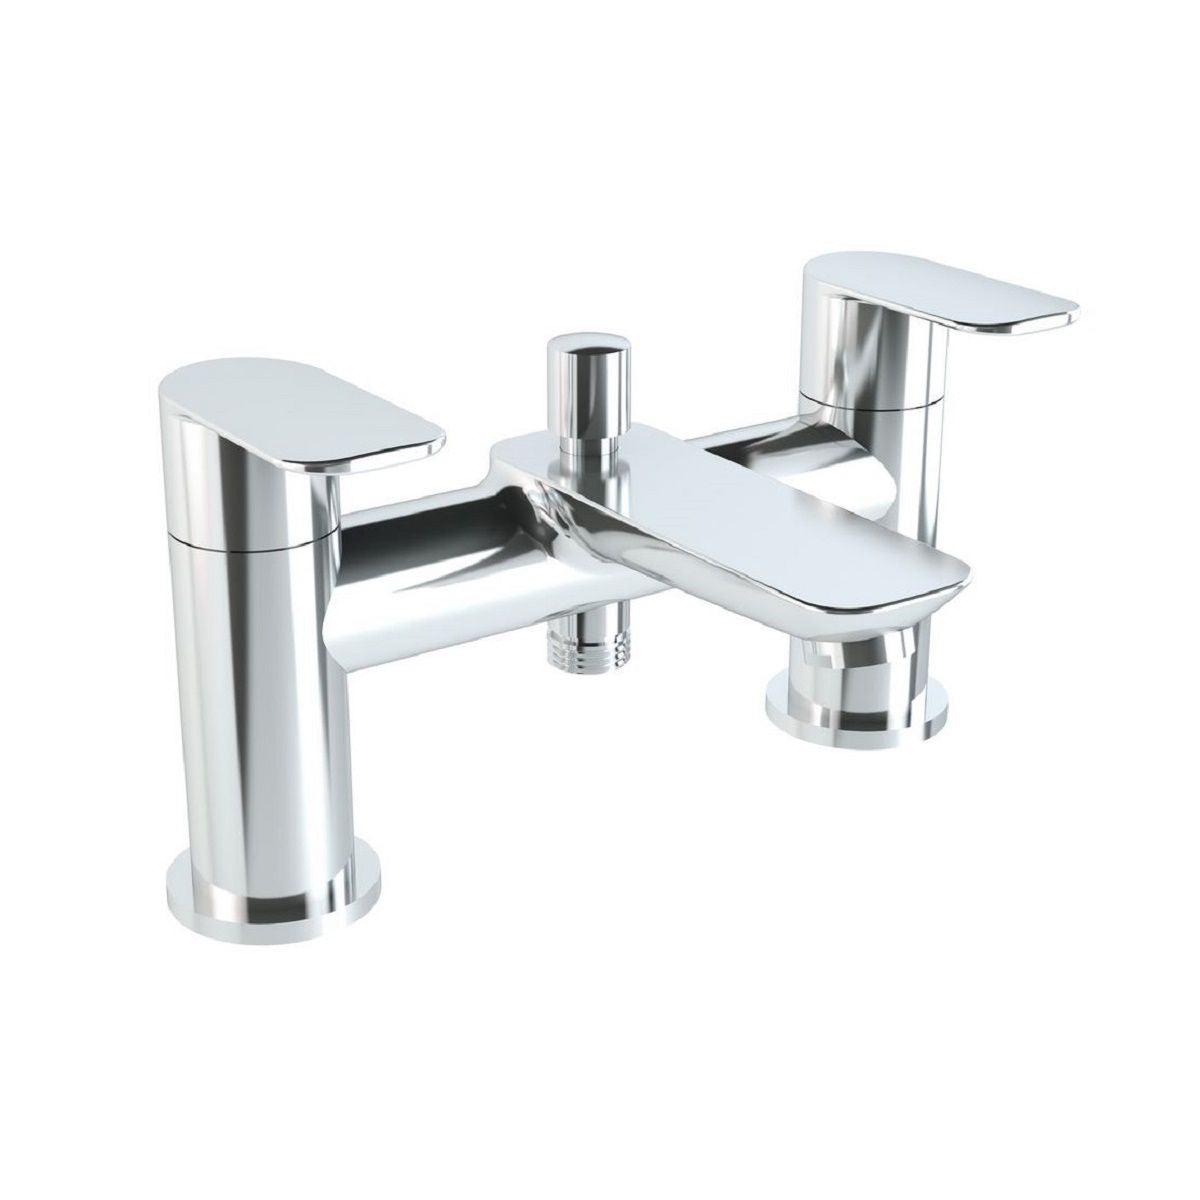 X-Line Bath Shower Mixer - Blue Sky Bathrooms Ltd